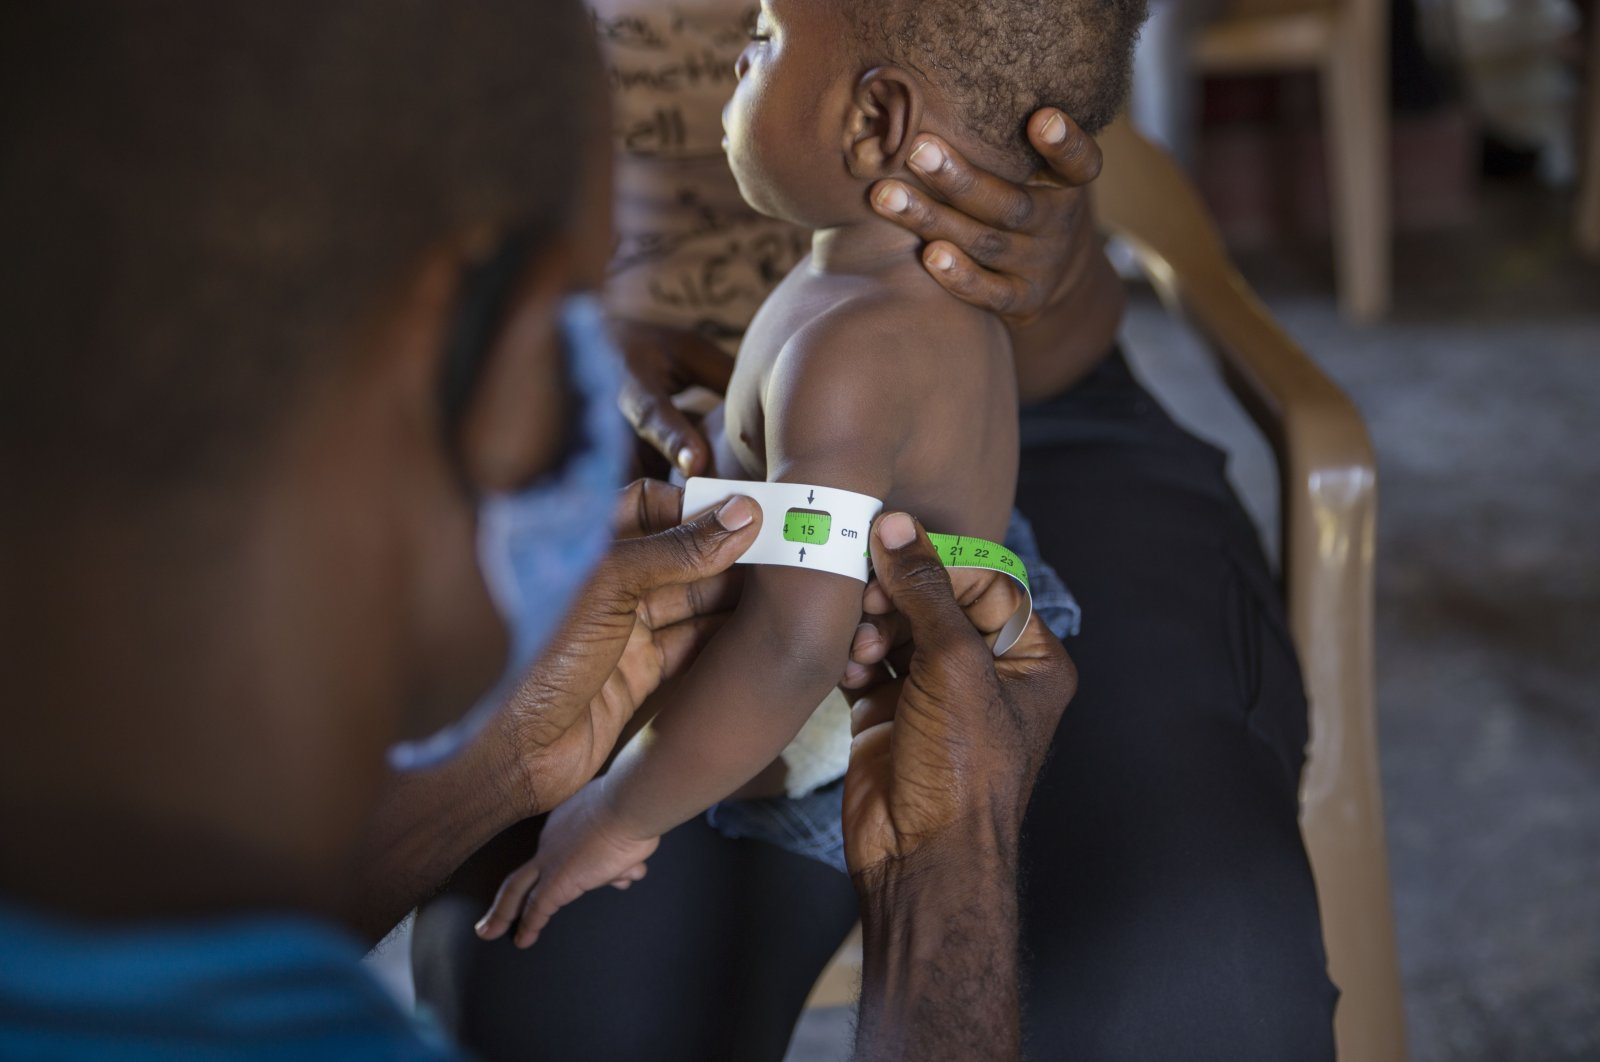 A health care worker measures the mid-upper arm circumference of an infant at a malnutrition clinic run by UNICEF, in Les Cayes, Haiti, May 26, 2021. (AP Photo)